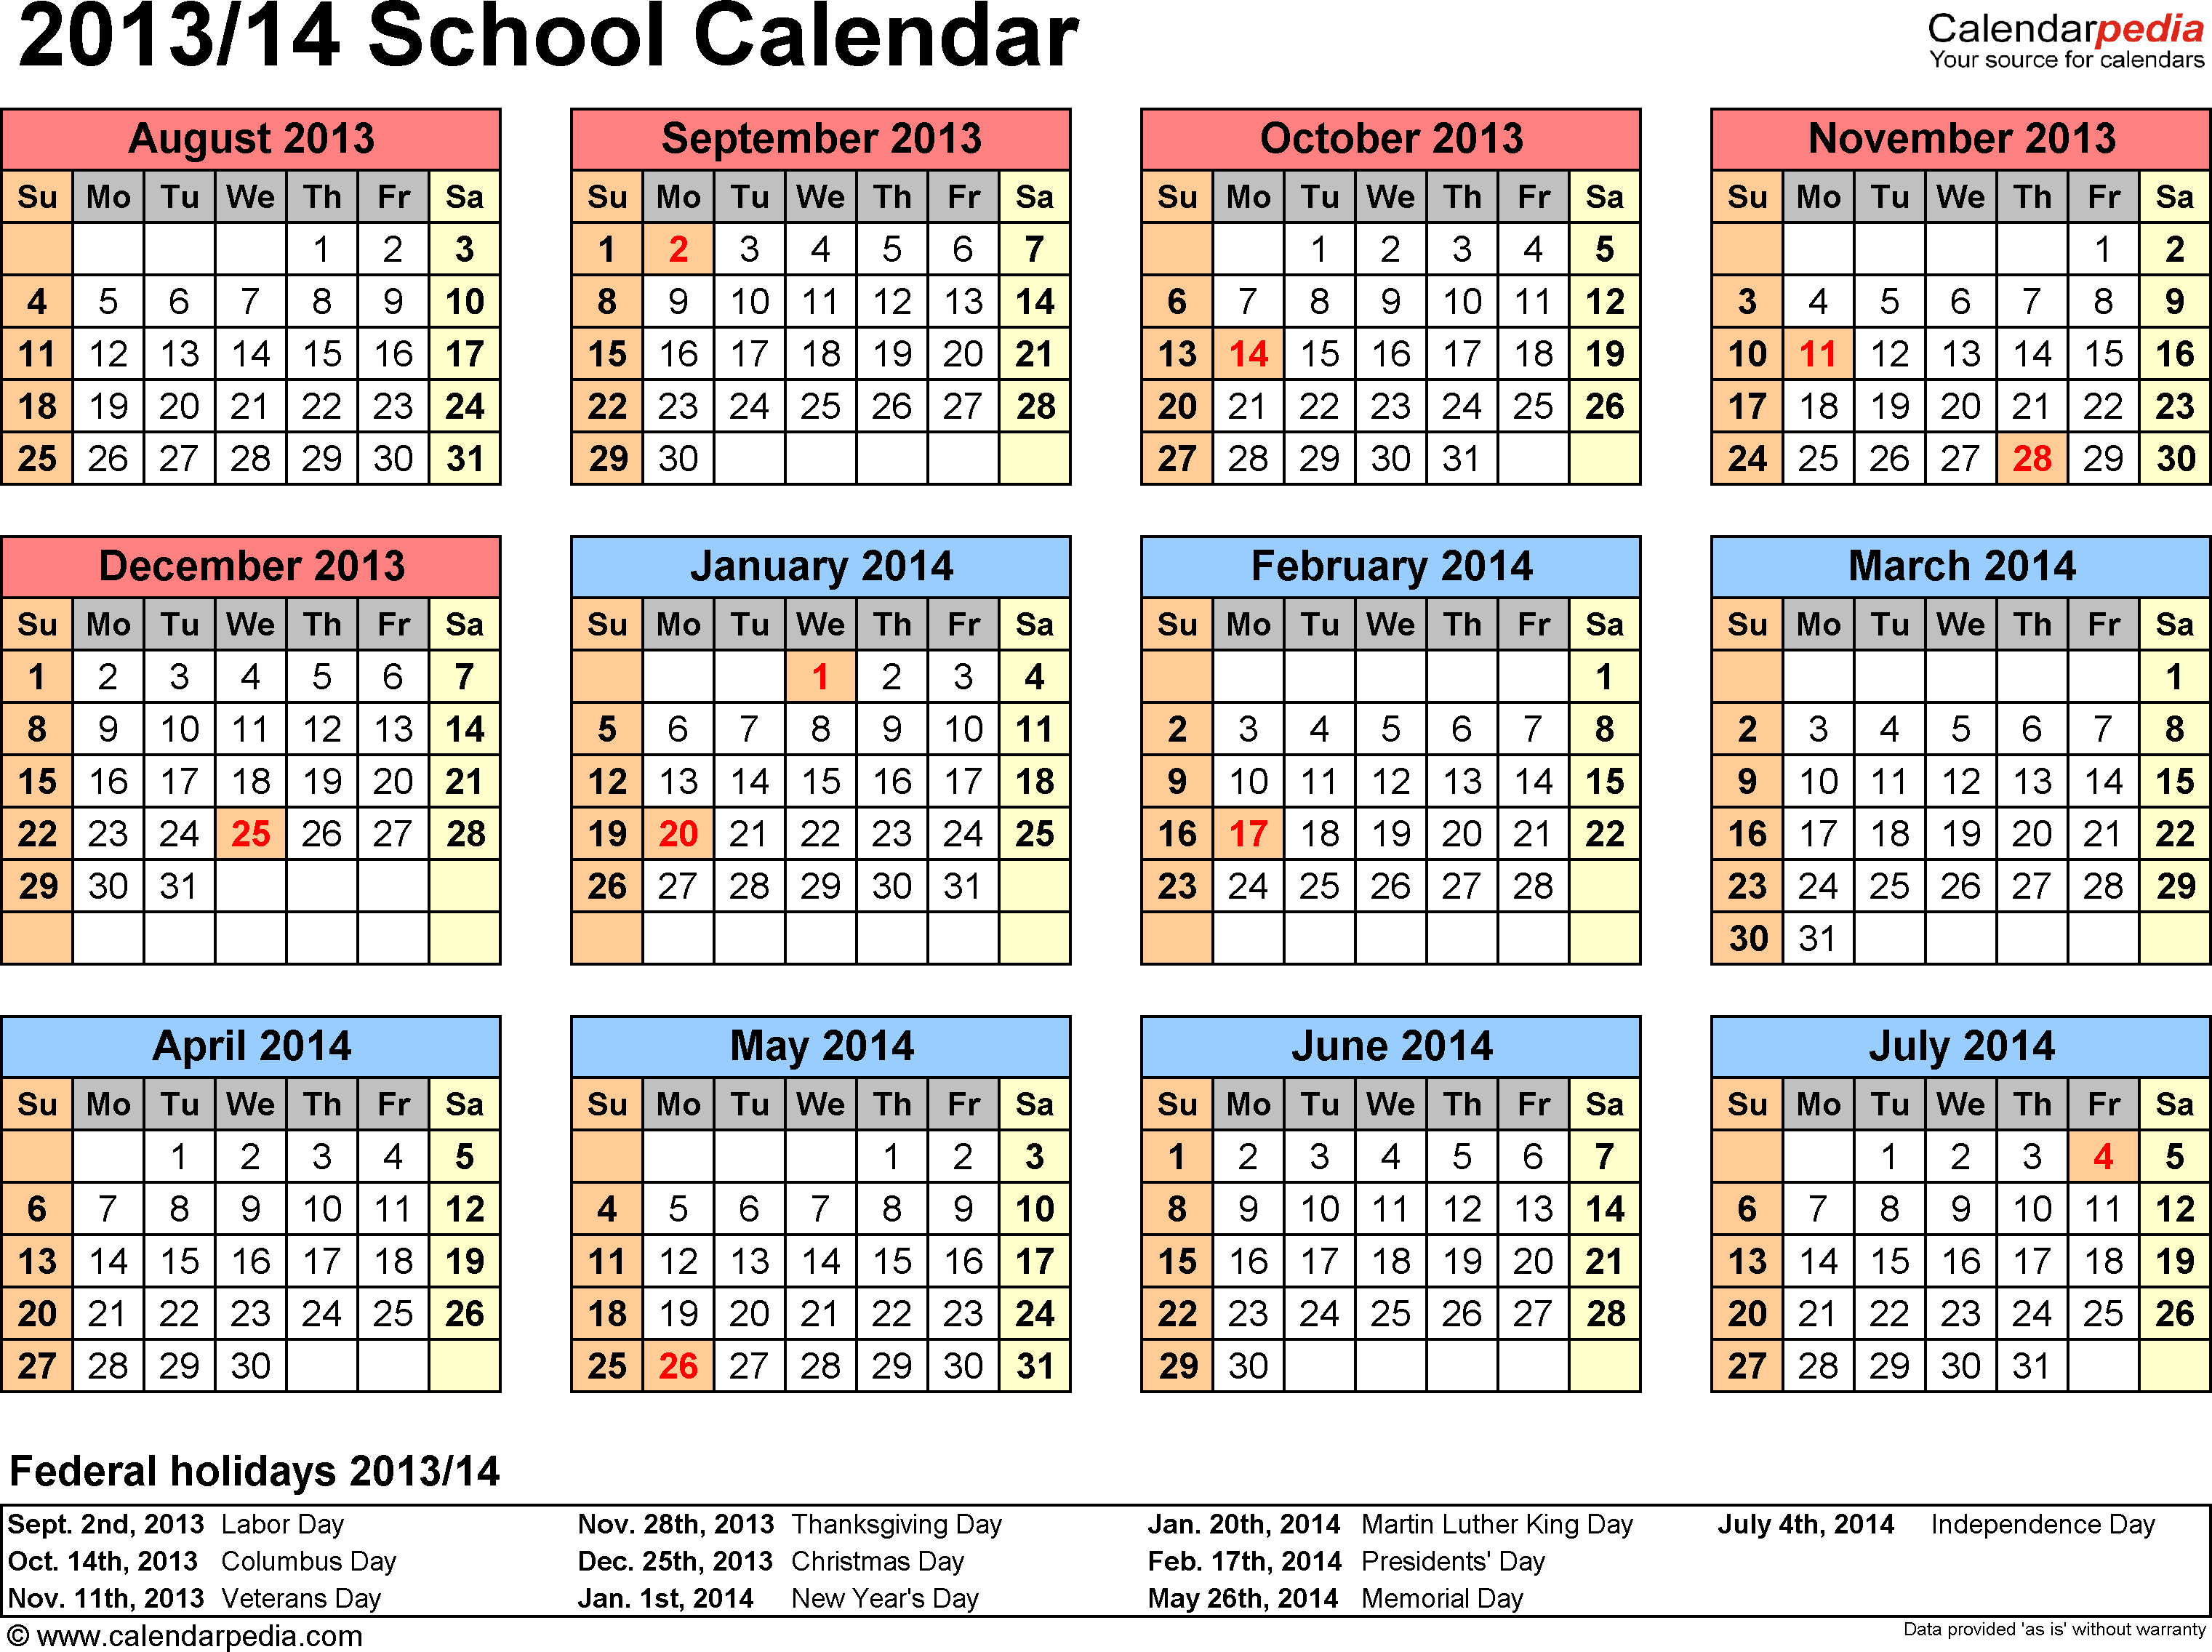 Template 4: School calendar 2013/14 for PDF, landscape orientation, year at a glance, 1 page